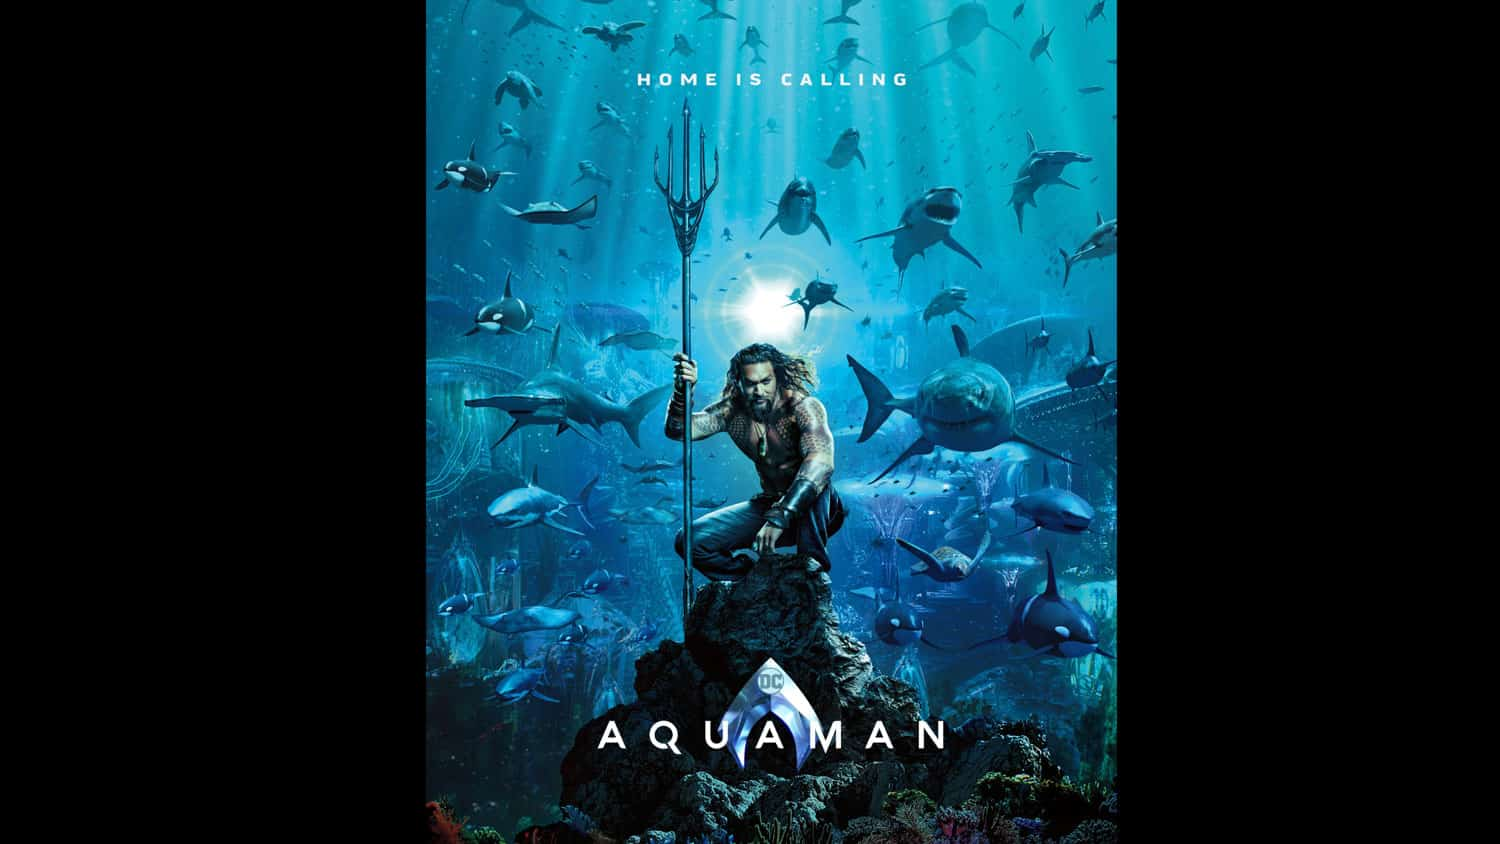 Aquaman – Official Teaser One-Sheet - OC Movie Reviews - Movie Reviews, Movie News, Documentary Reviews, Short Films, Short Film Reviews, Trailers, Movie Trailers, Interviews, film reviews, film news, hollywood, indie films, documentaries